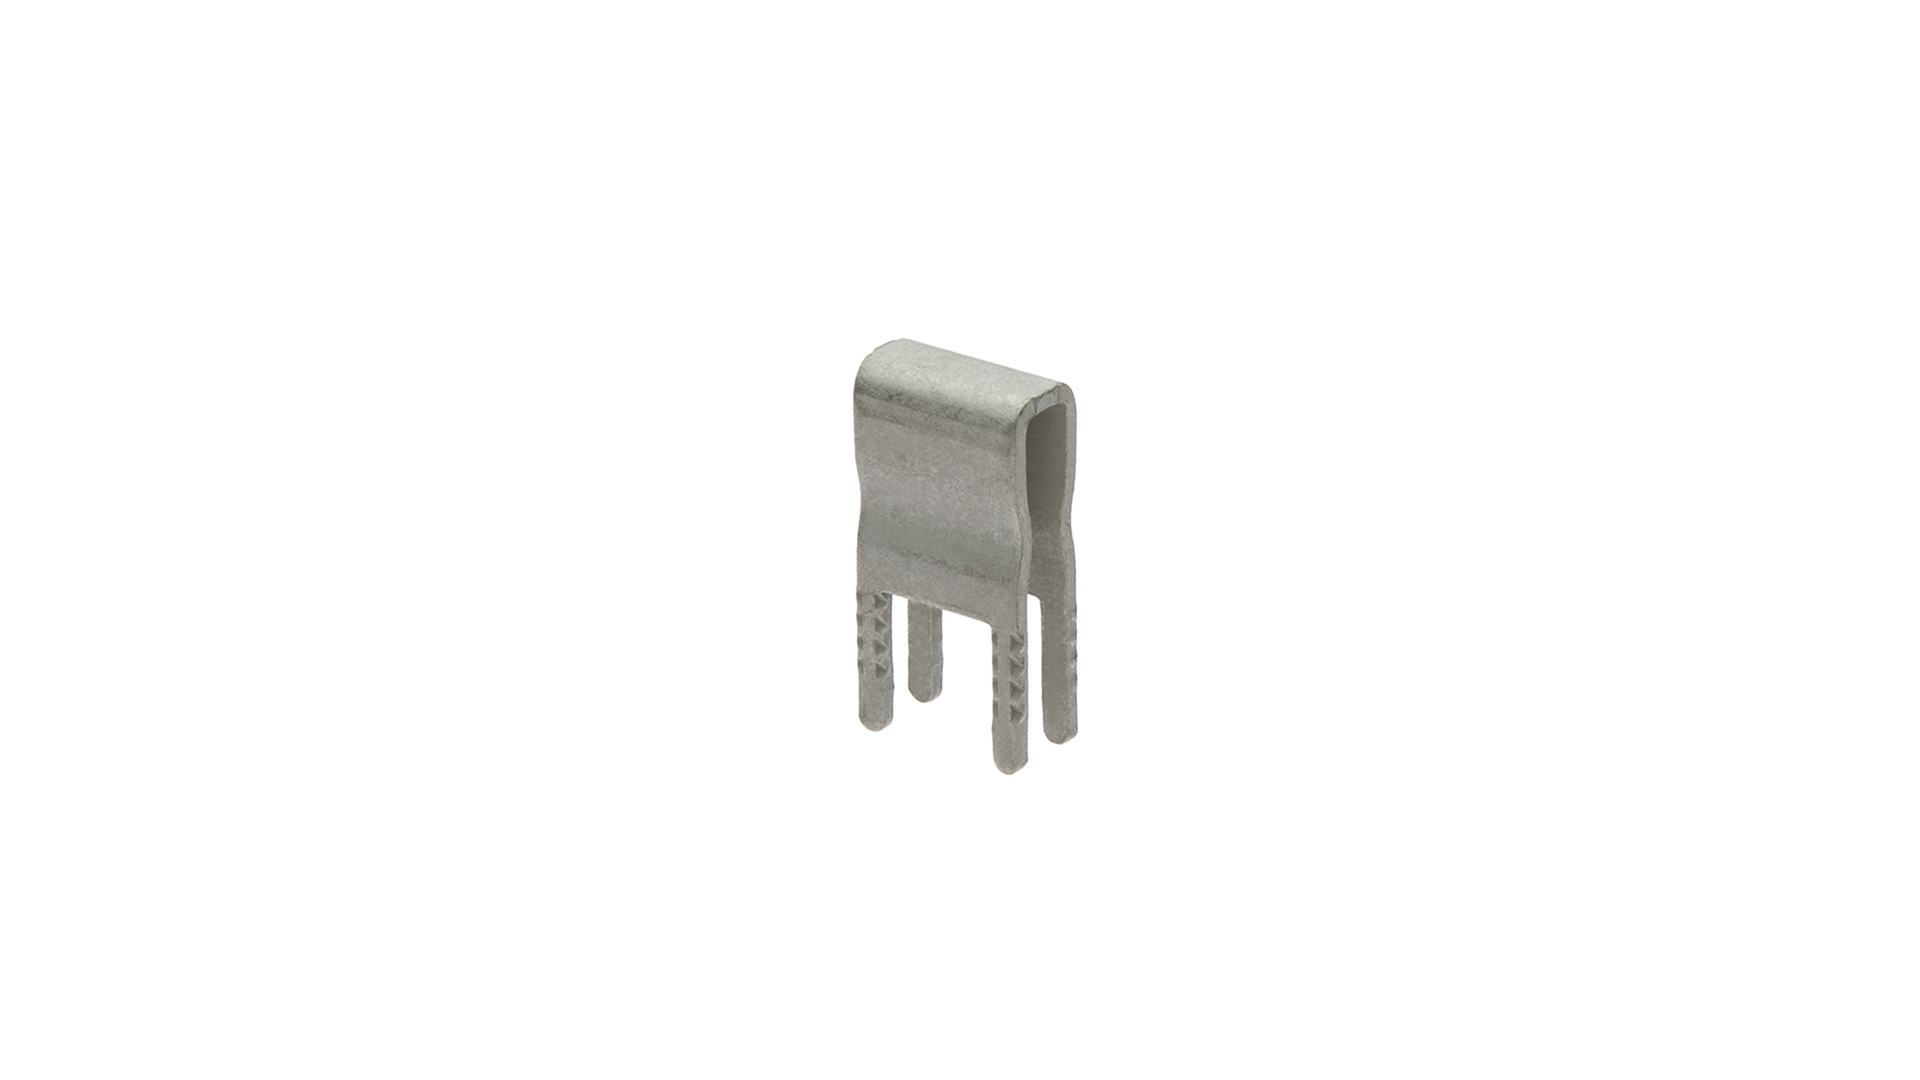 55A Vertical Mini Powerclaw PCB Contacts (PP75)